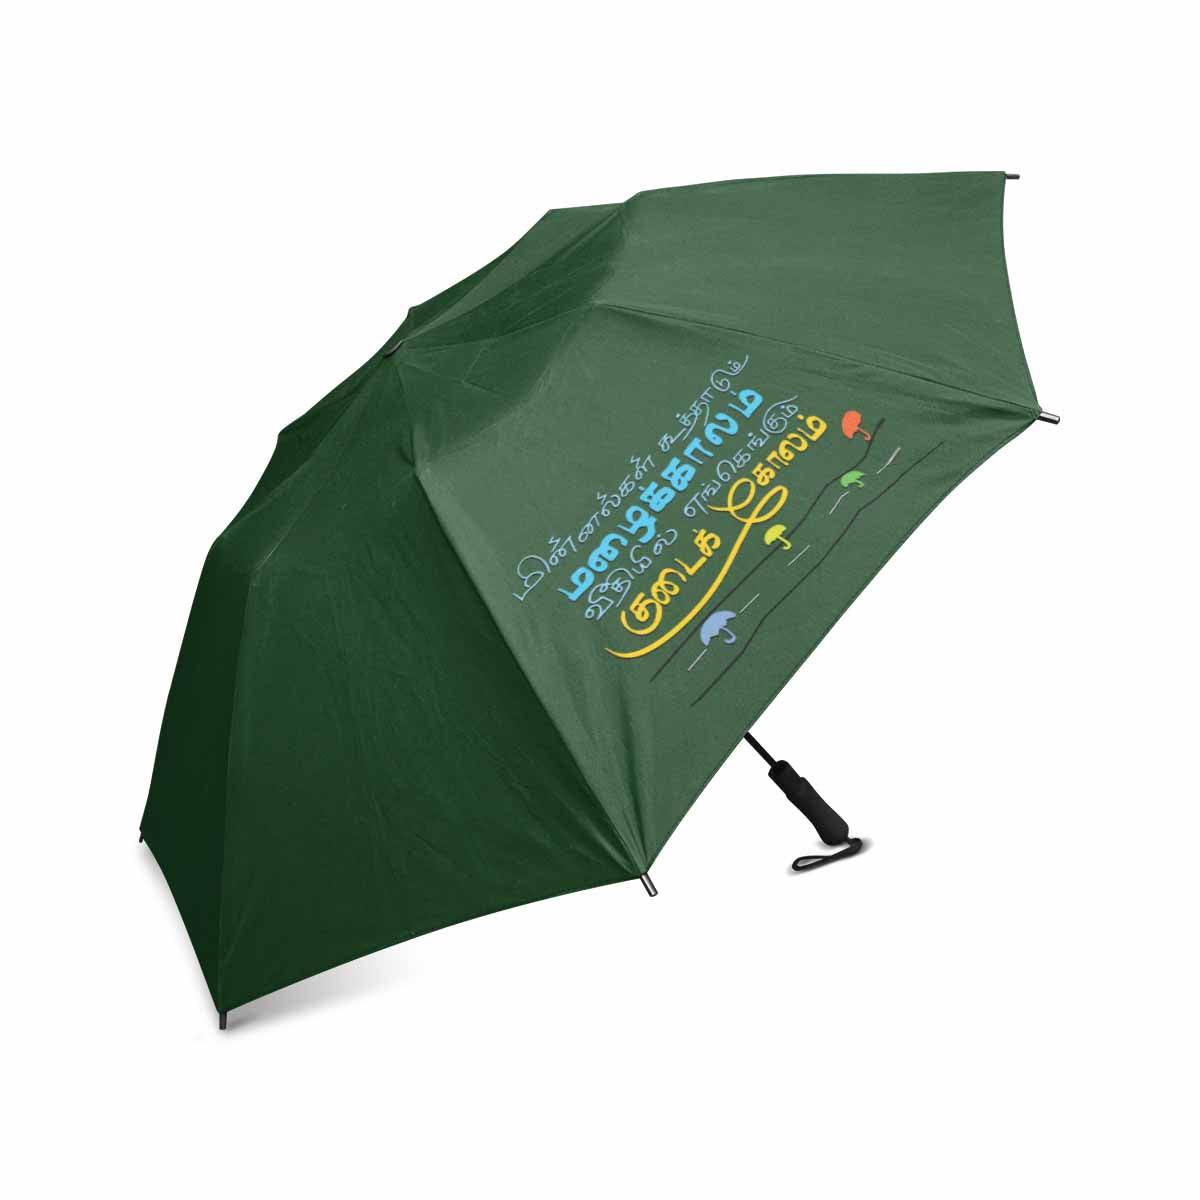 Green Thamizh semi automatic foldable umbrella 42 inch Minnalgal Koothaadum Mazhaikaalam gift idea for friends and family